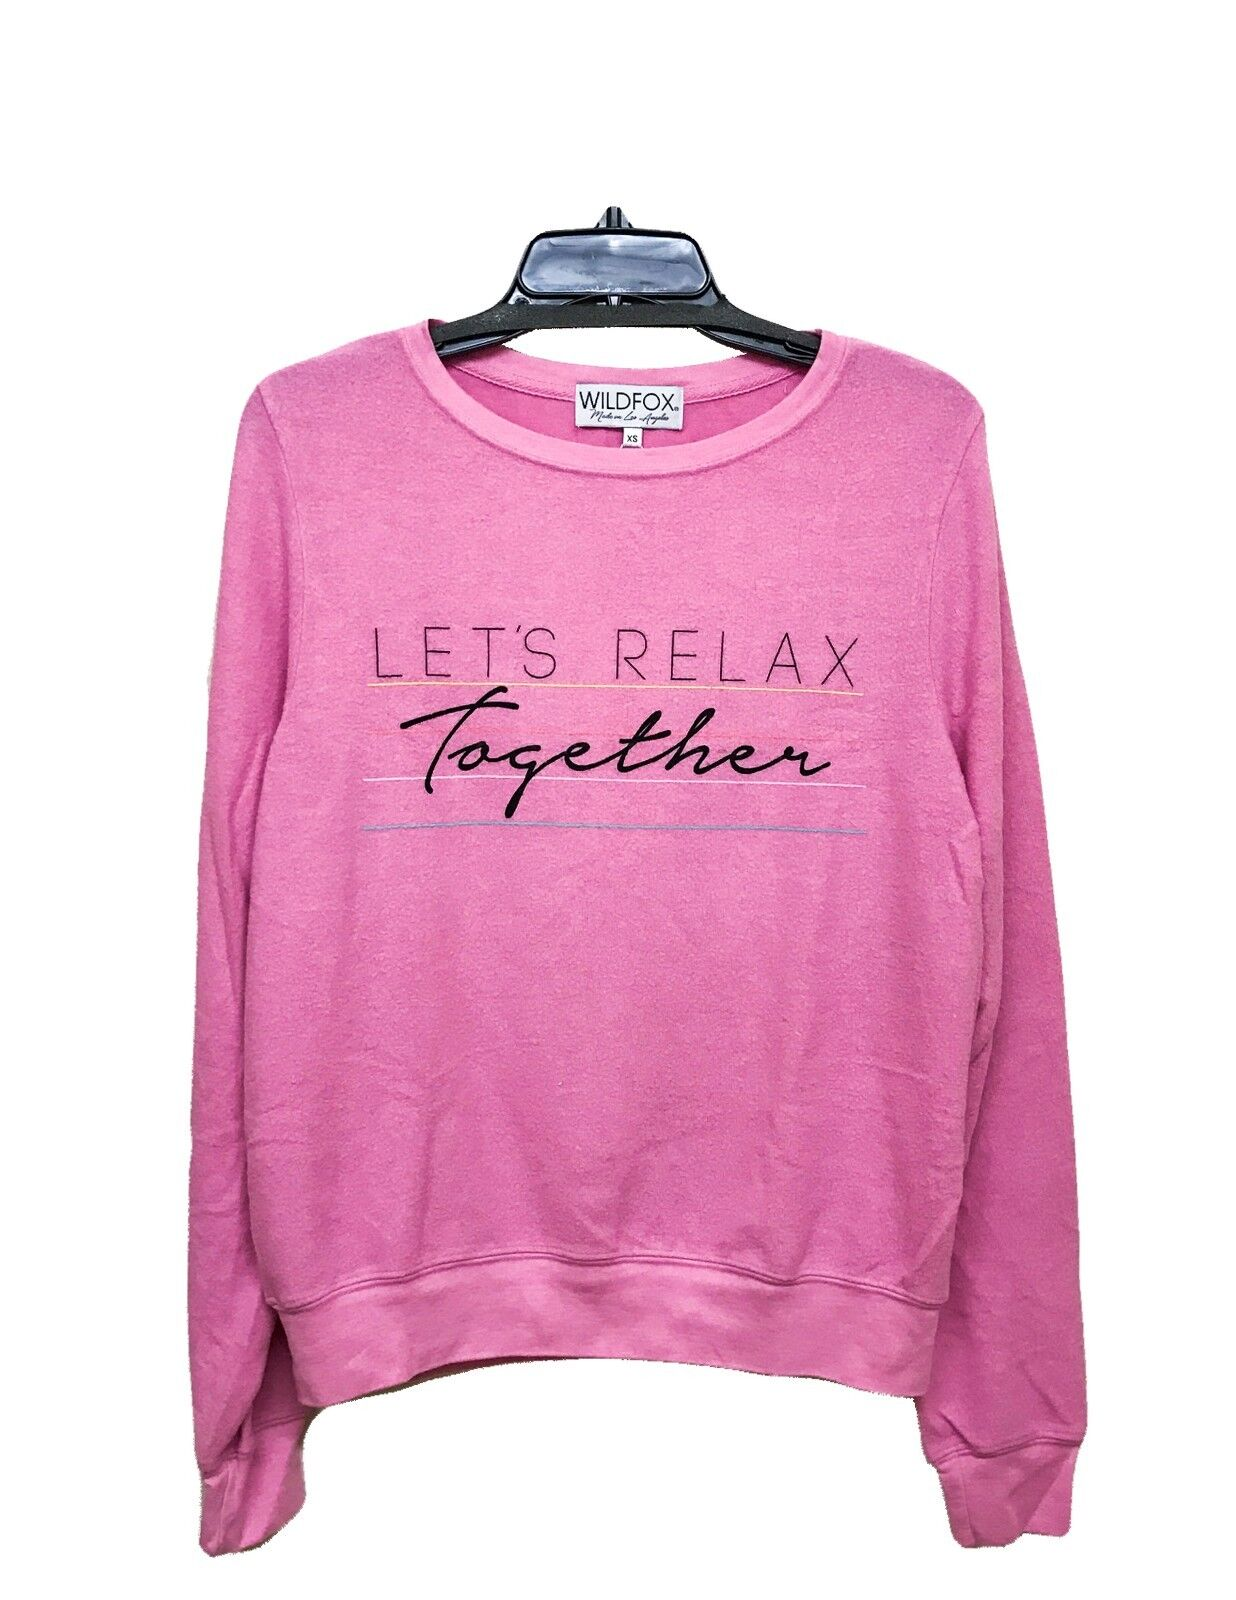 Wildfox Couture damen Lets Relax Together BBJ Rosa Sweater Shirt Top XS S M L